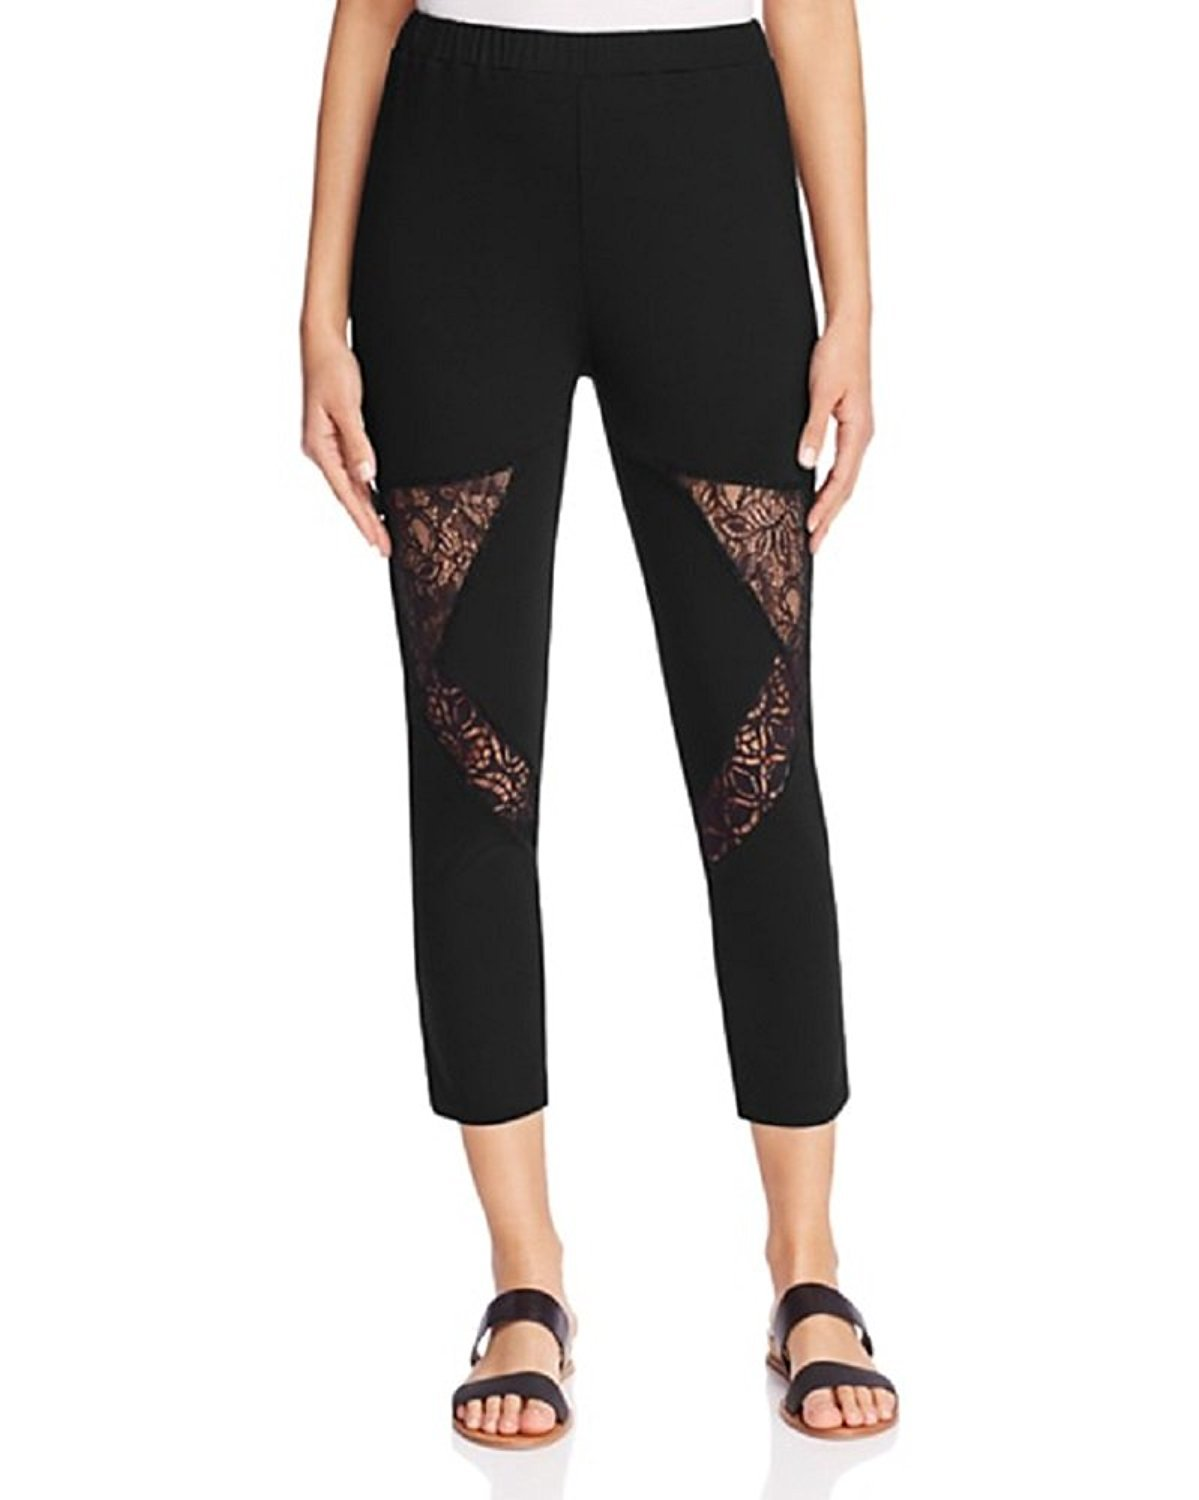 Finity Lace Inset Leggings (Black, 4)